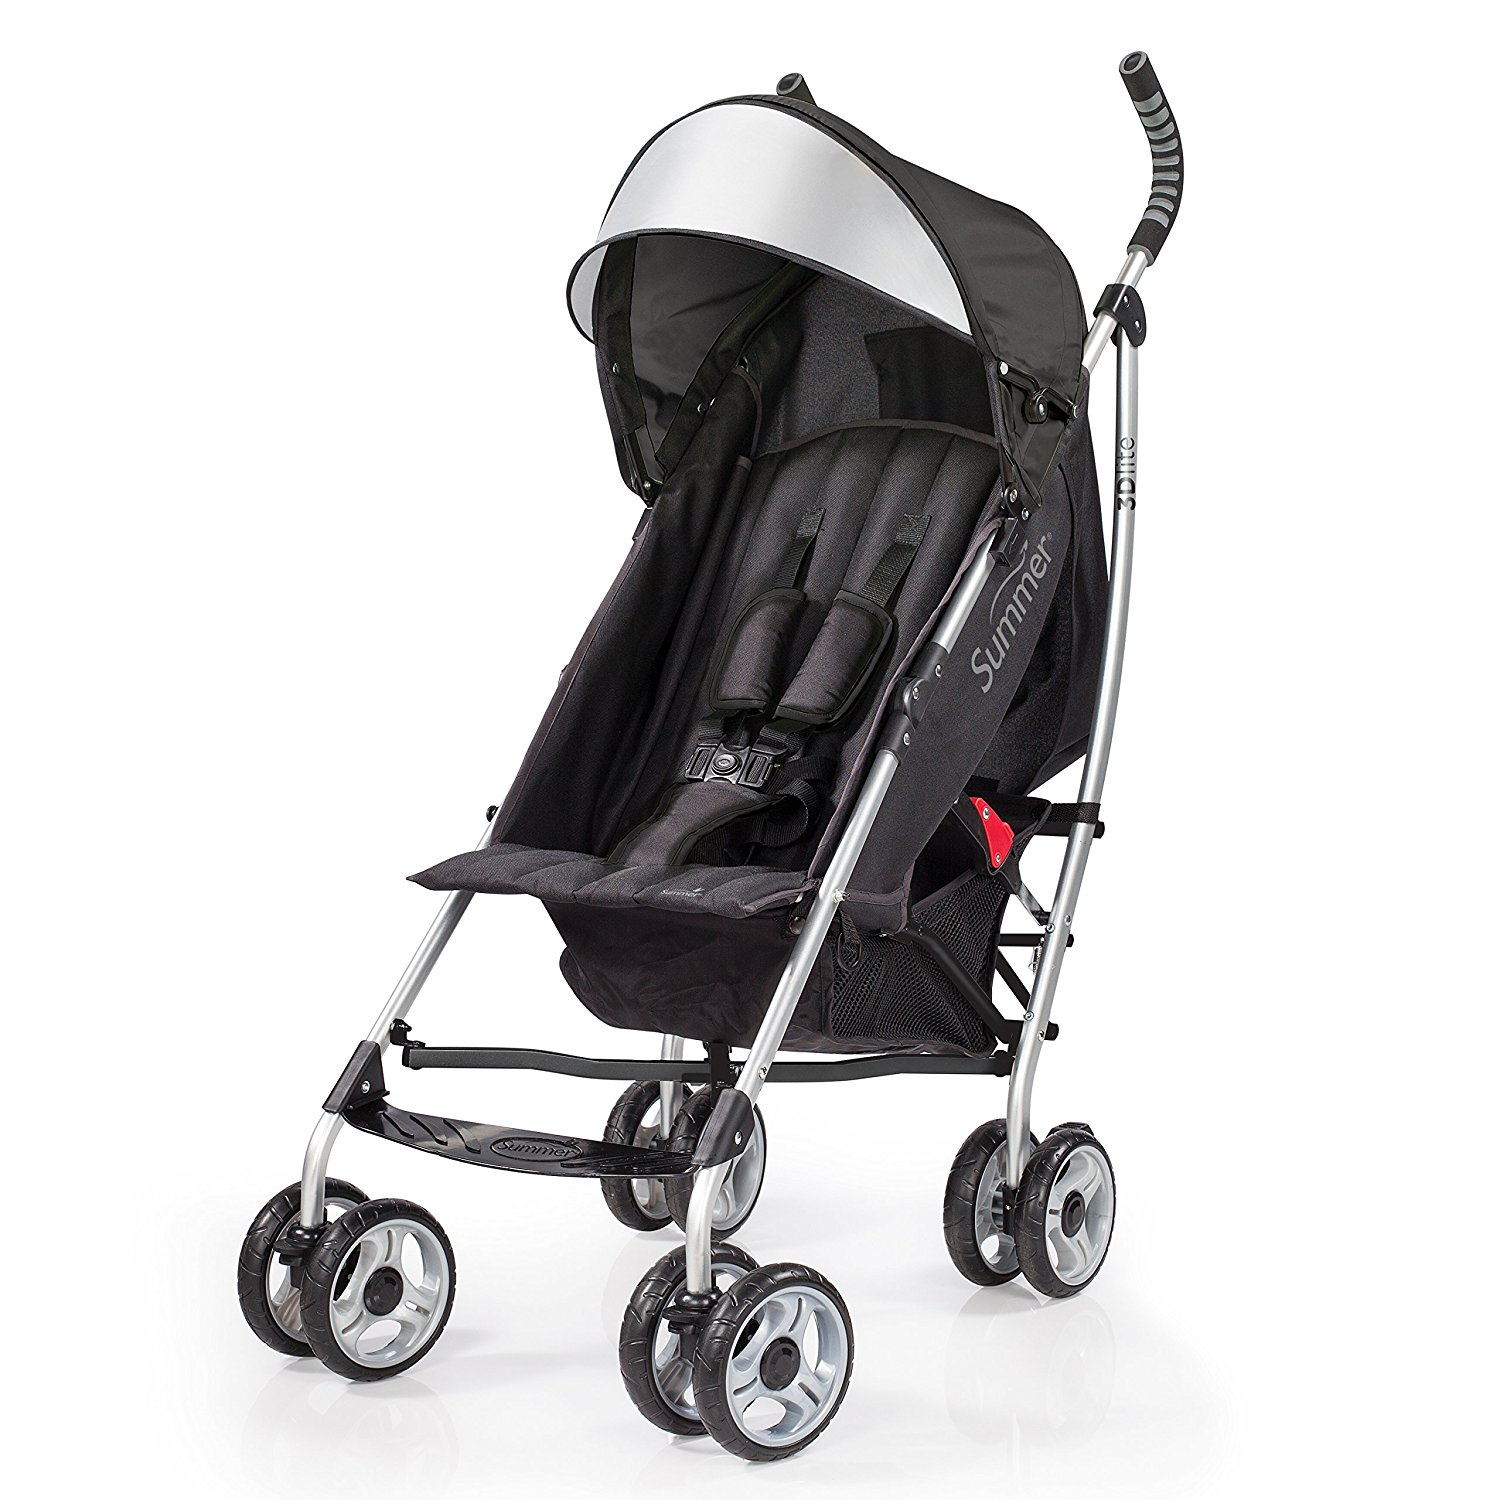 What to look for when buying a Stroller